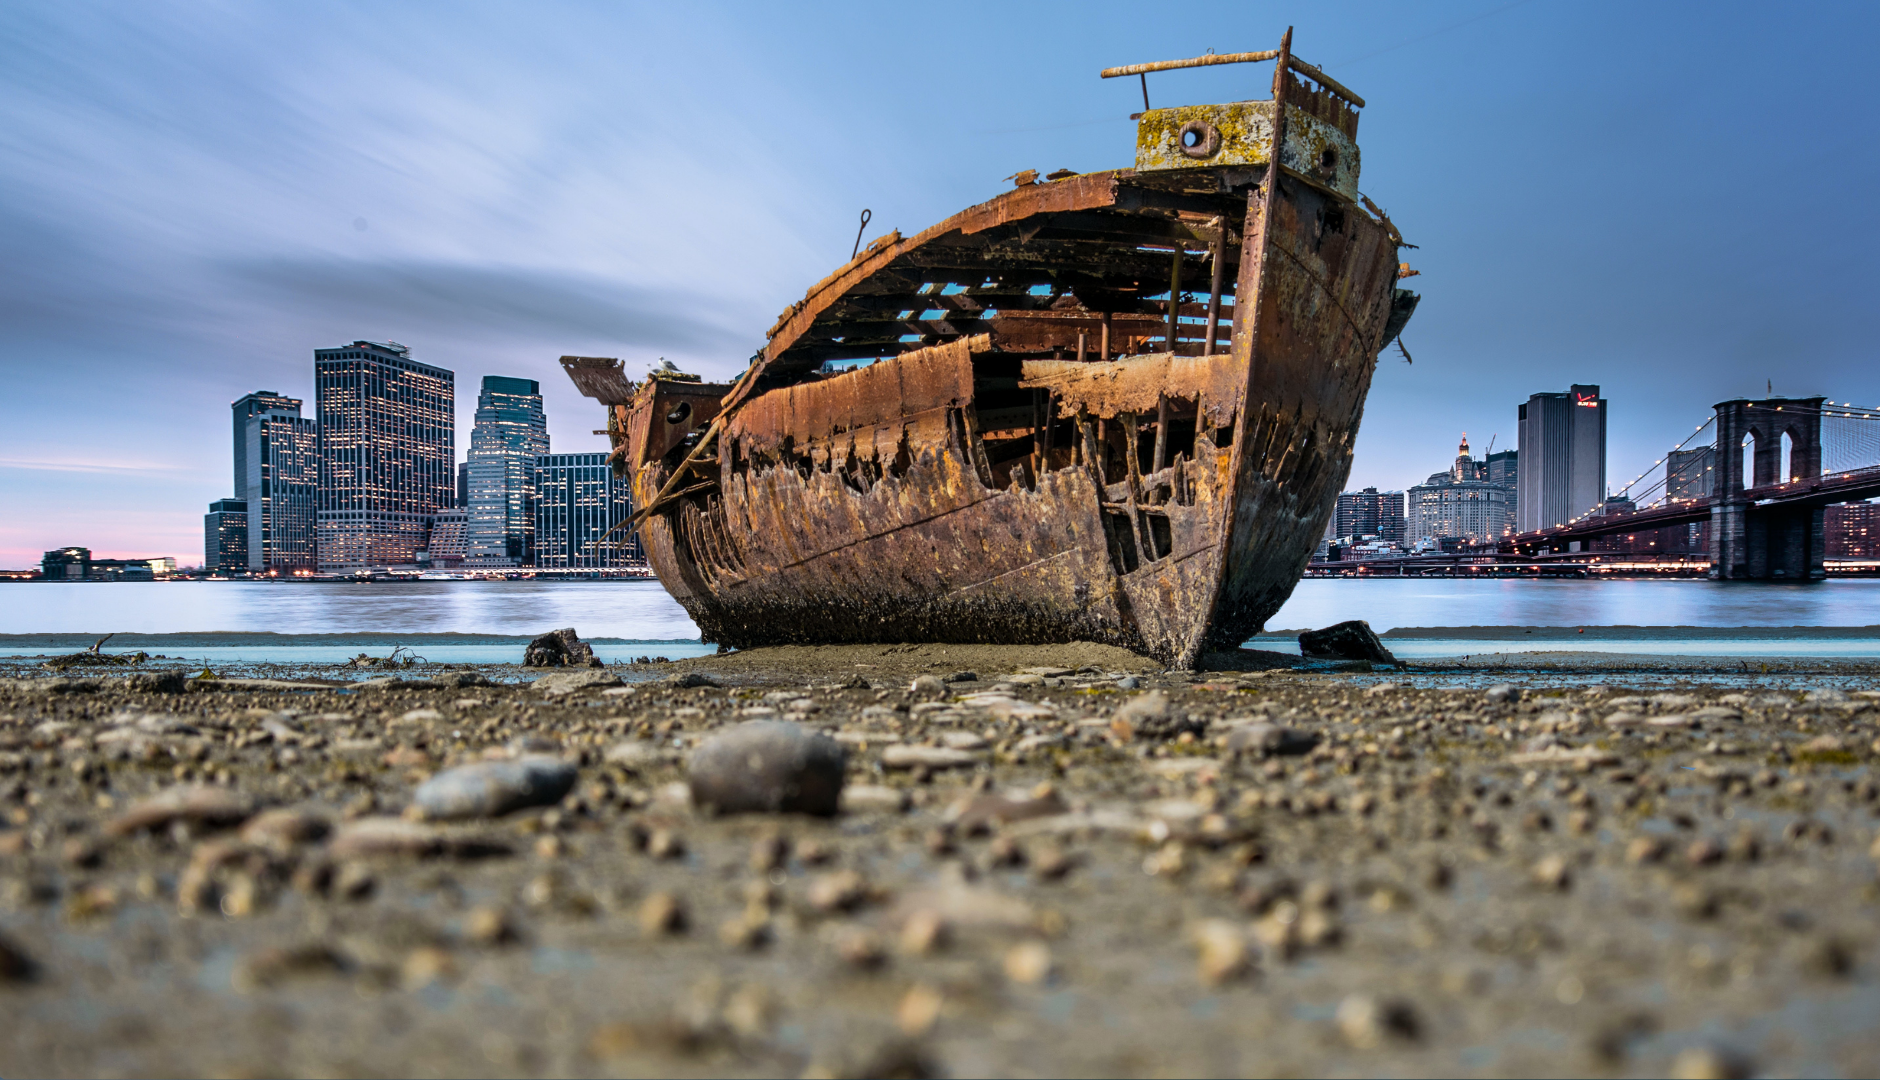 A ship wreck on the shore in front of a big city is symbolising the damages from the pandemic to property values and life style but also showing life coming back after the storm. The city's lights are on!